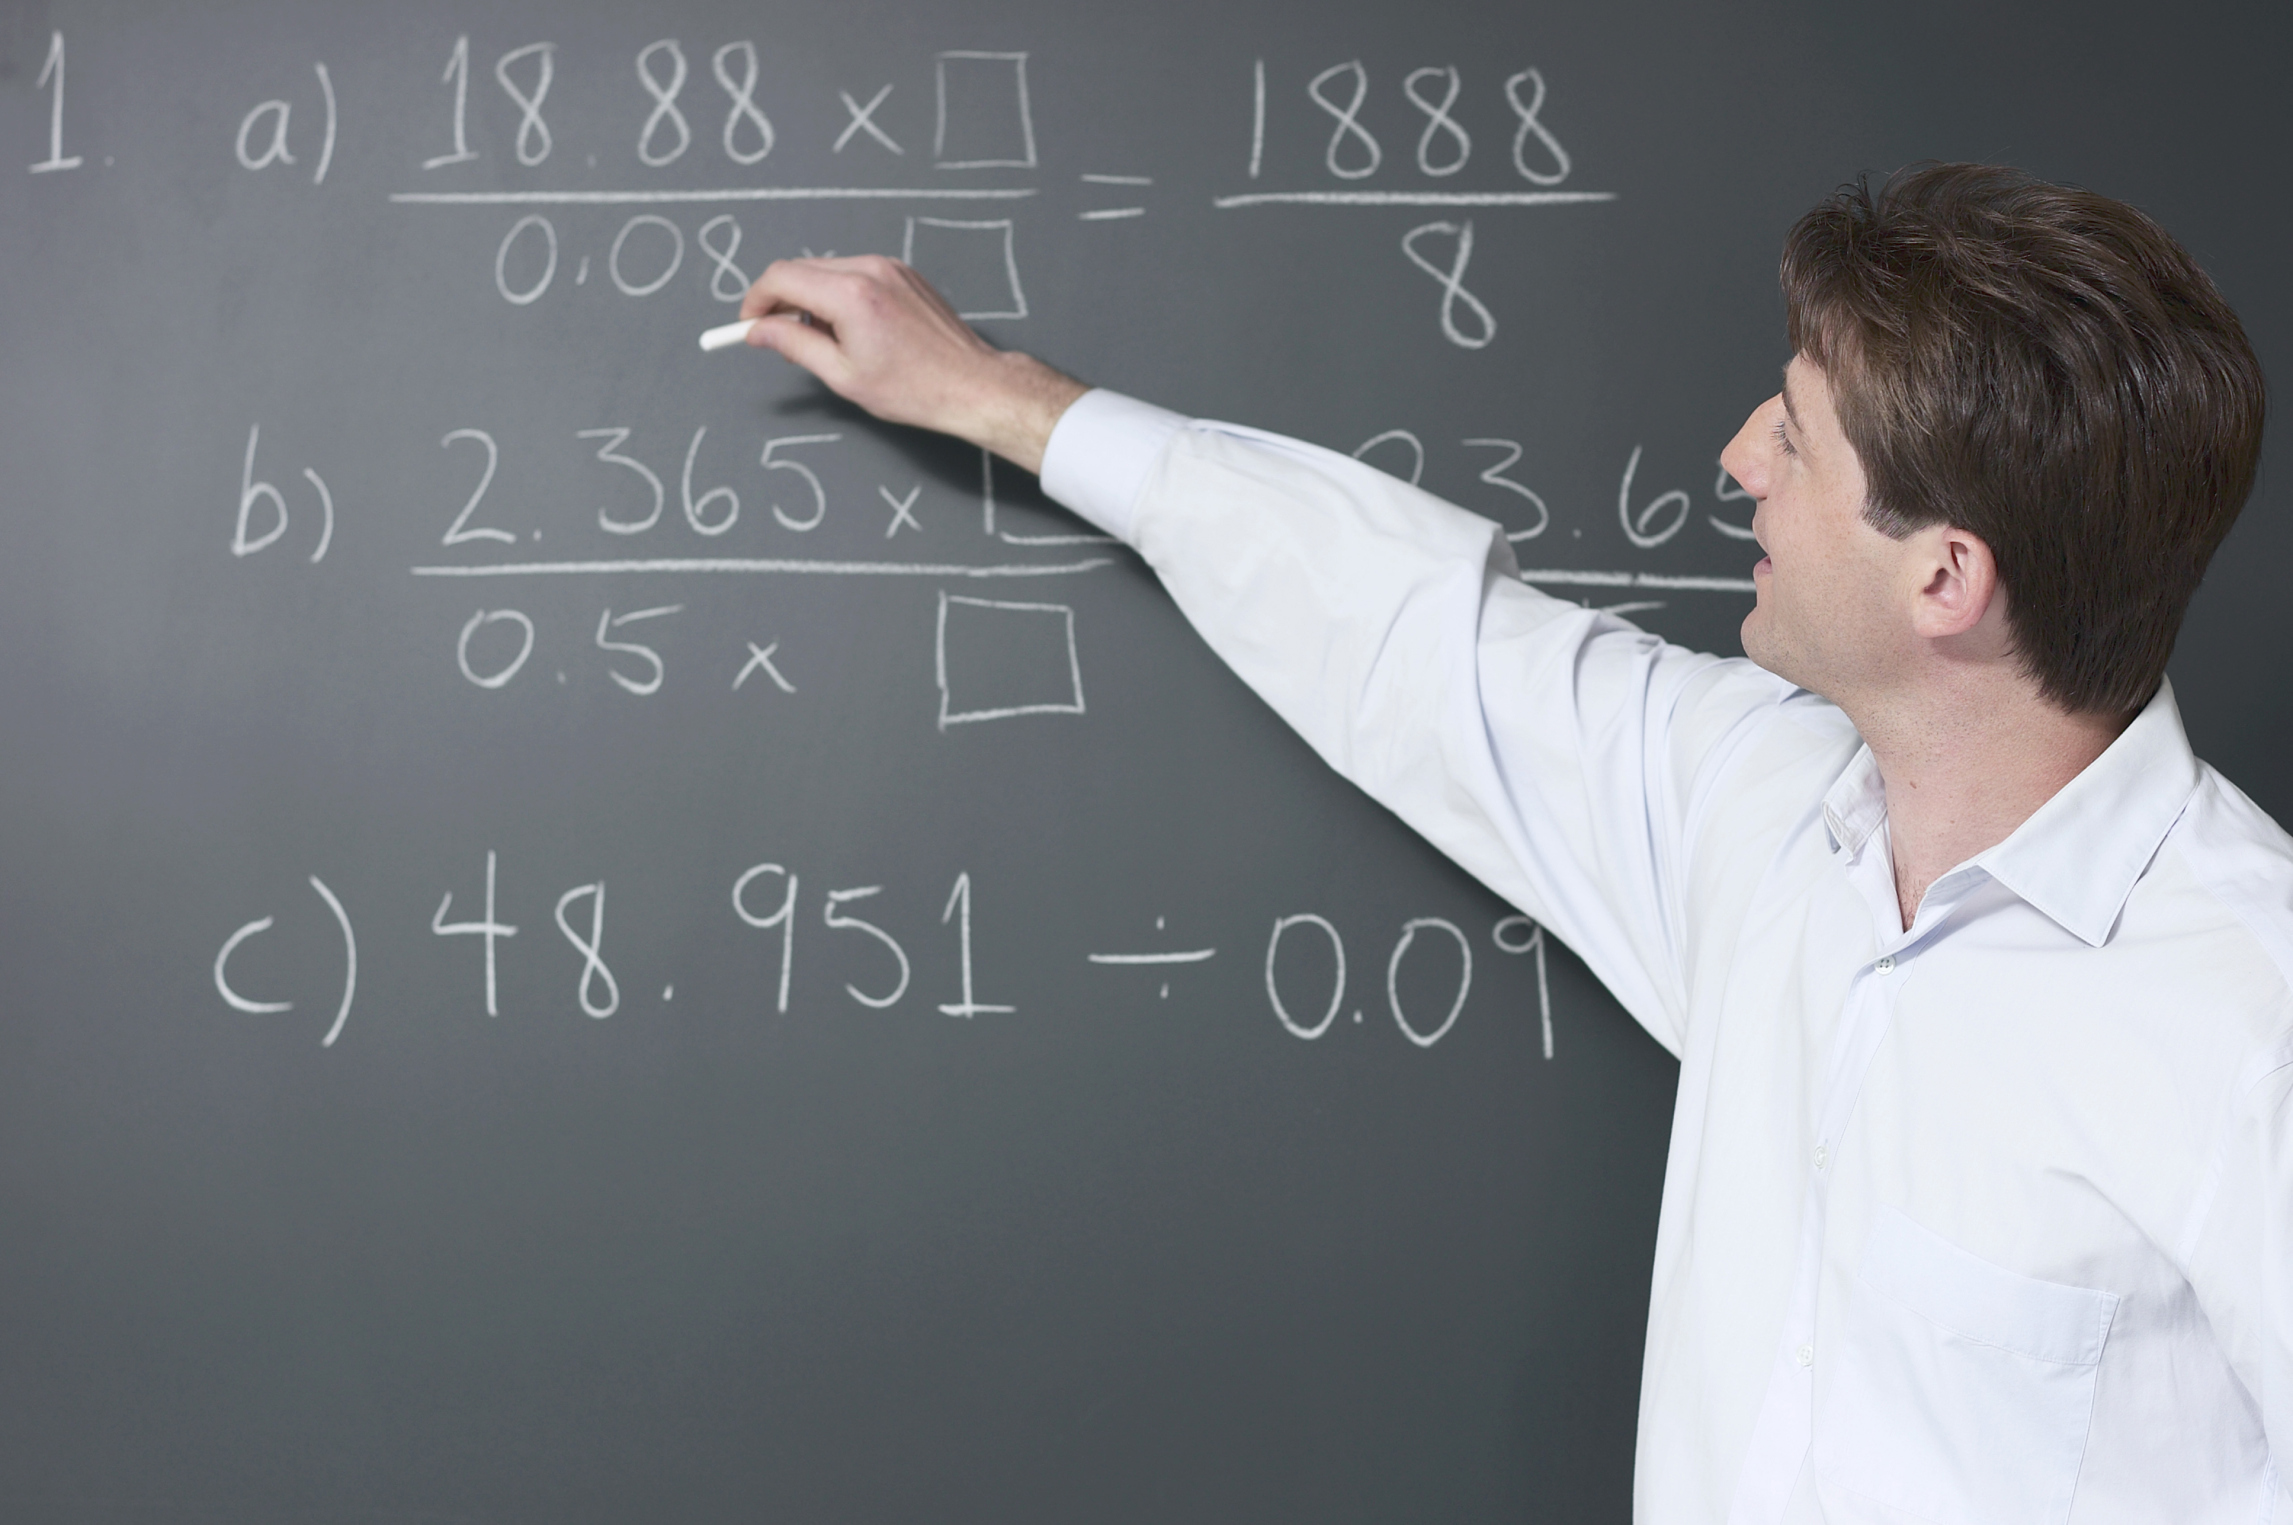 Maths and science learning time frame unrealistic, say East Lancs educators